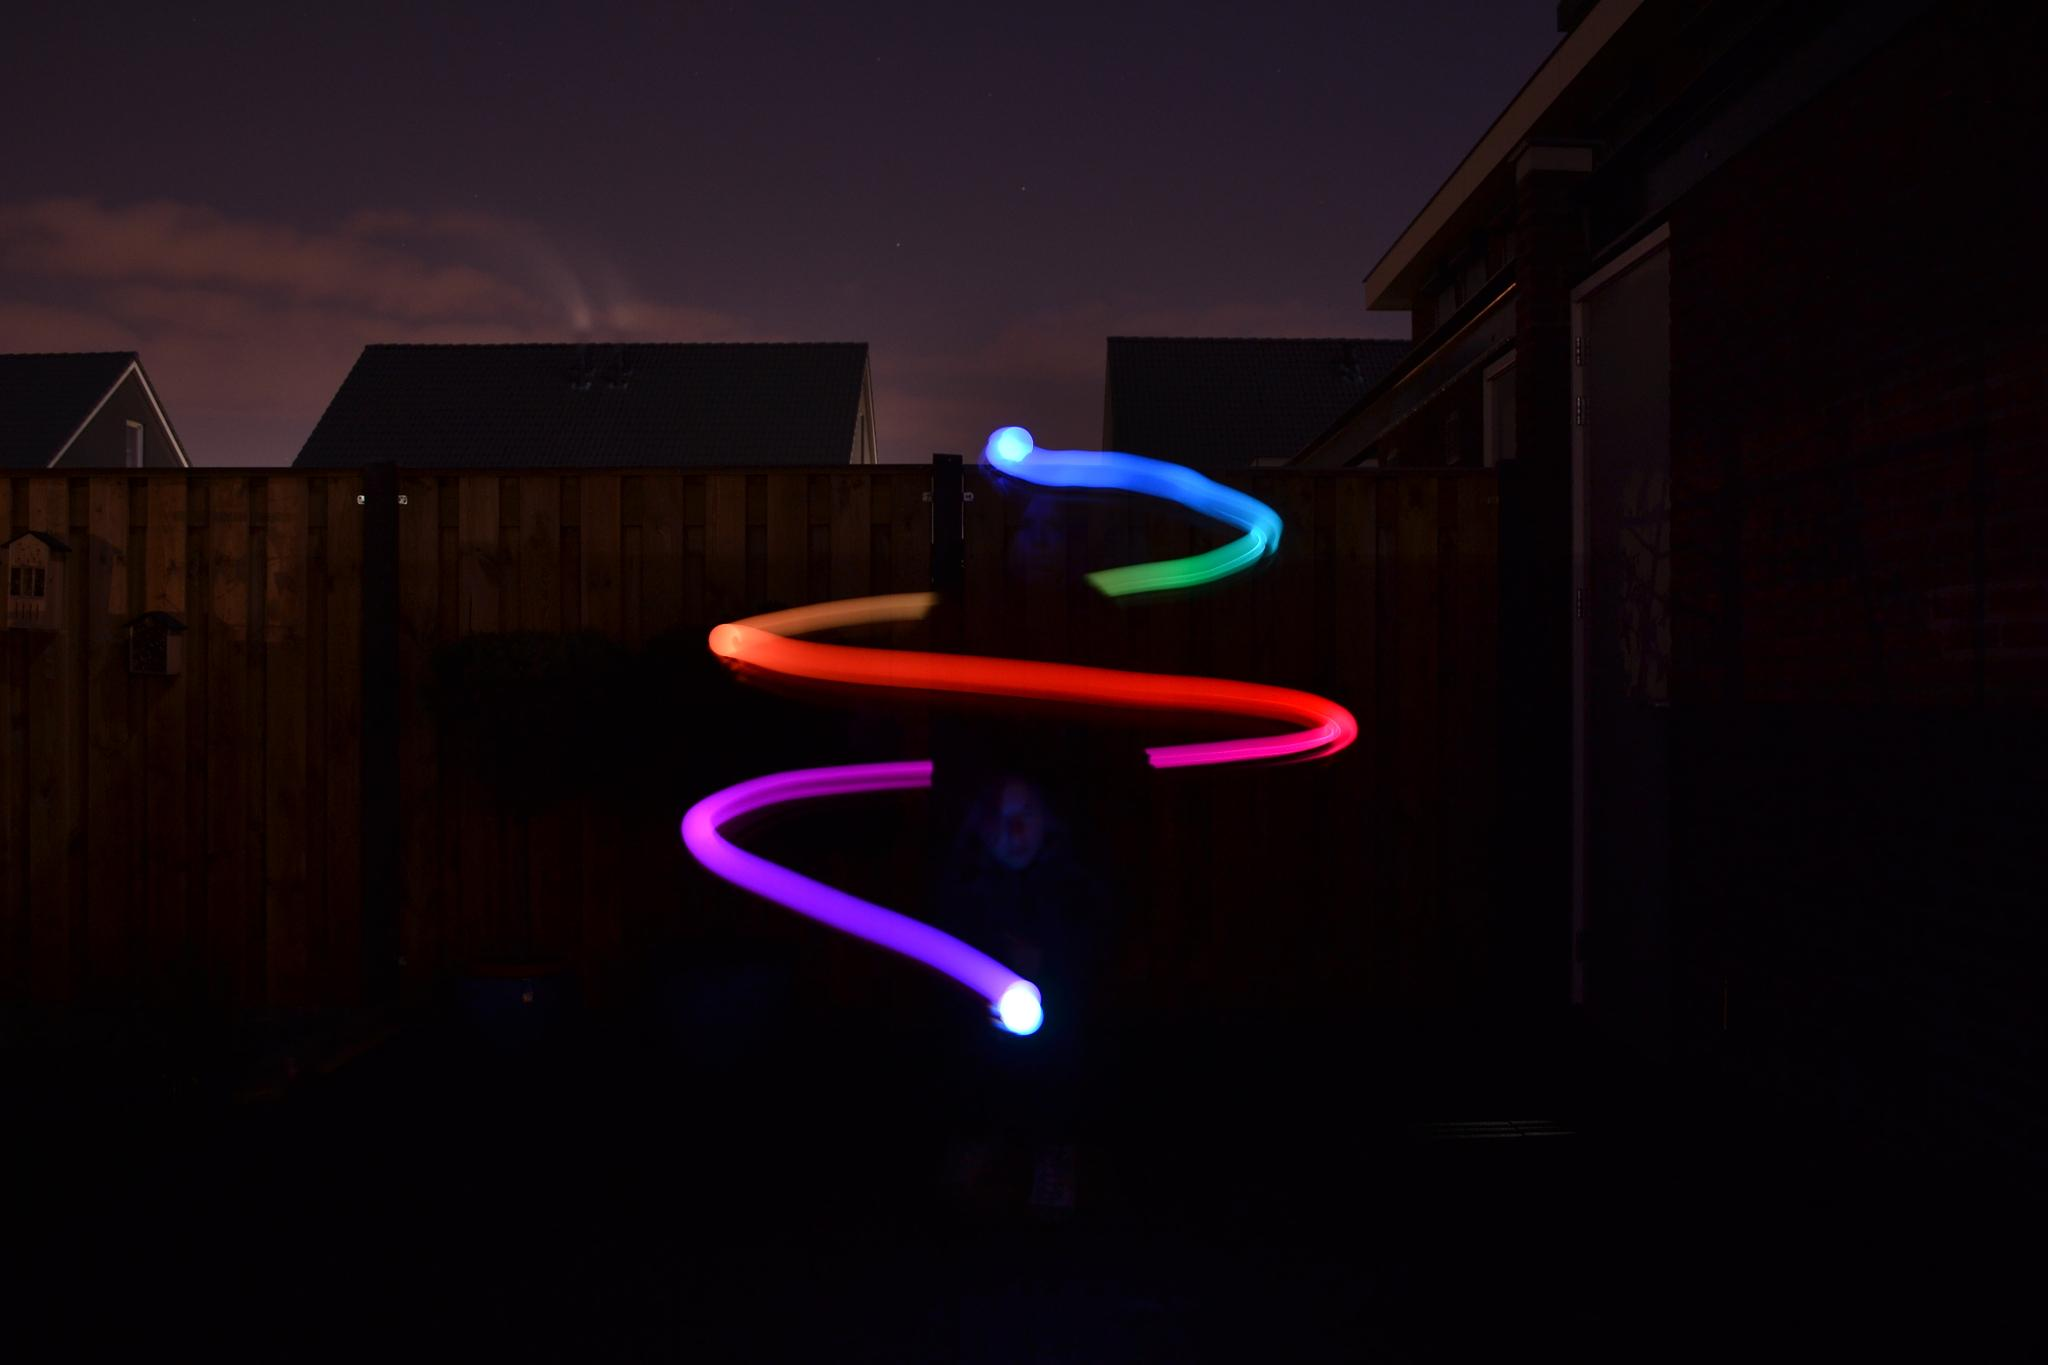 Fun with lights by ellenderks